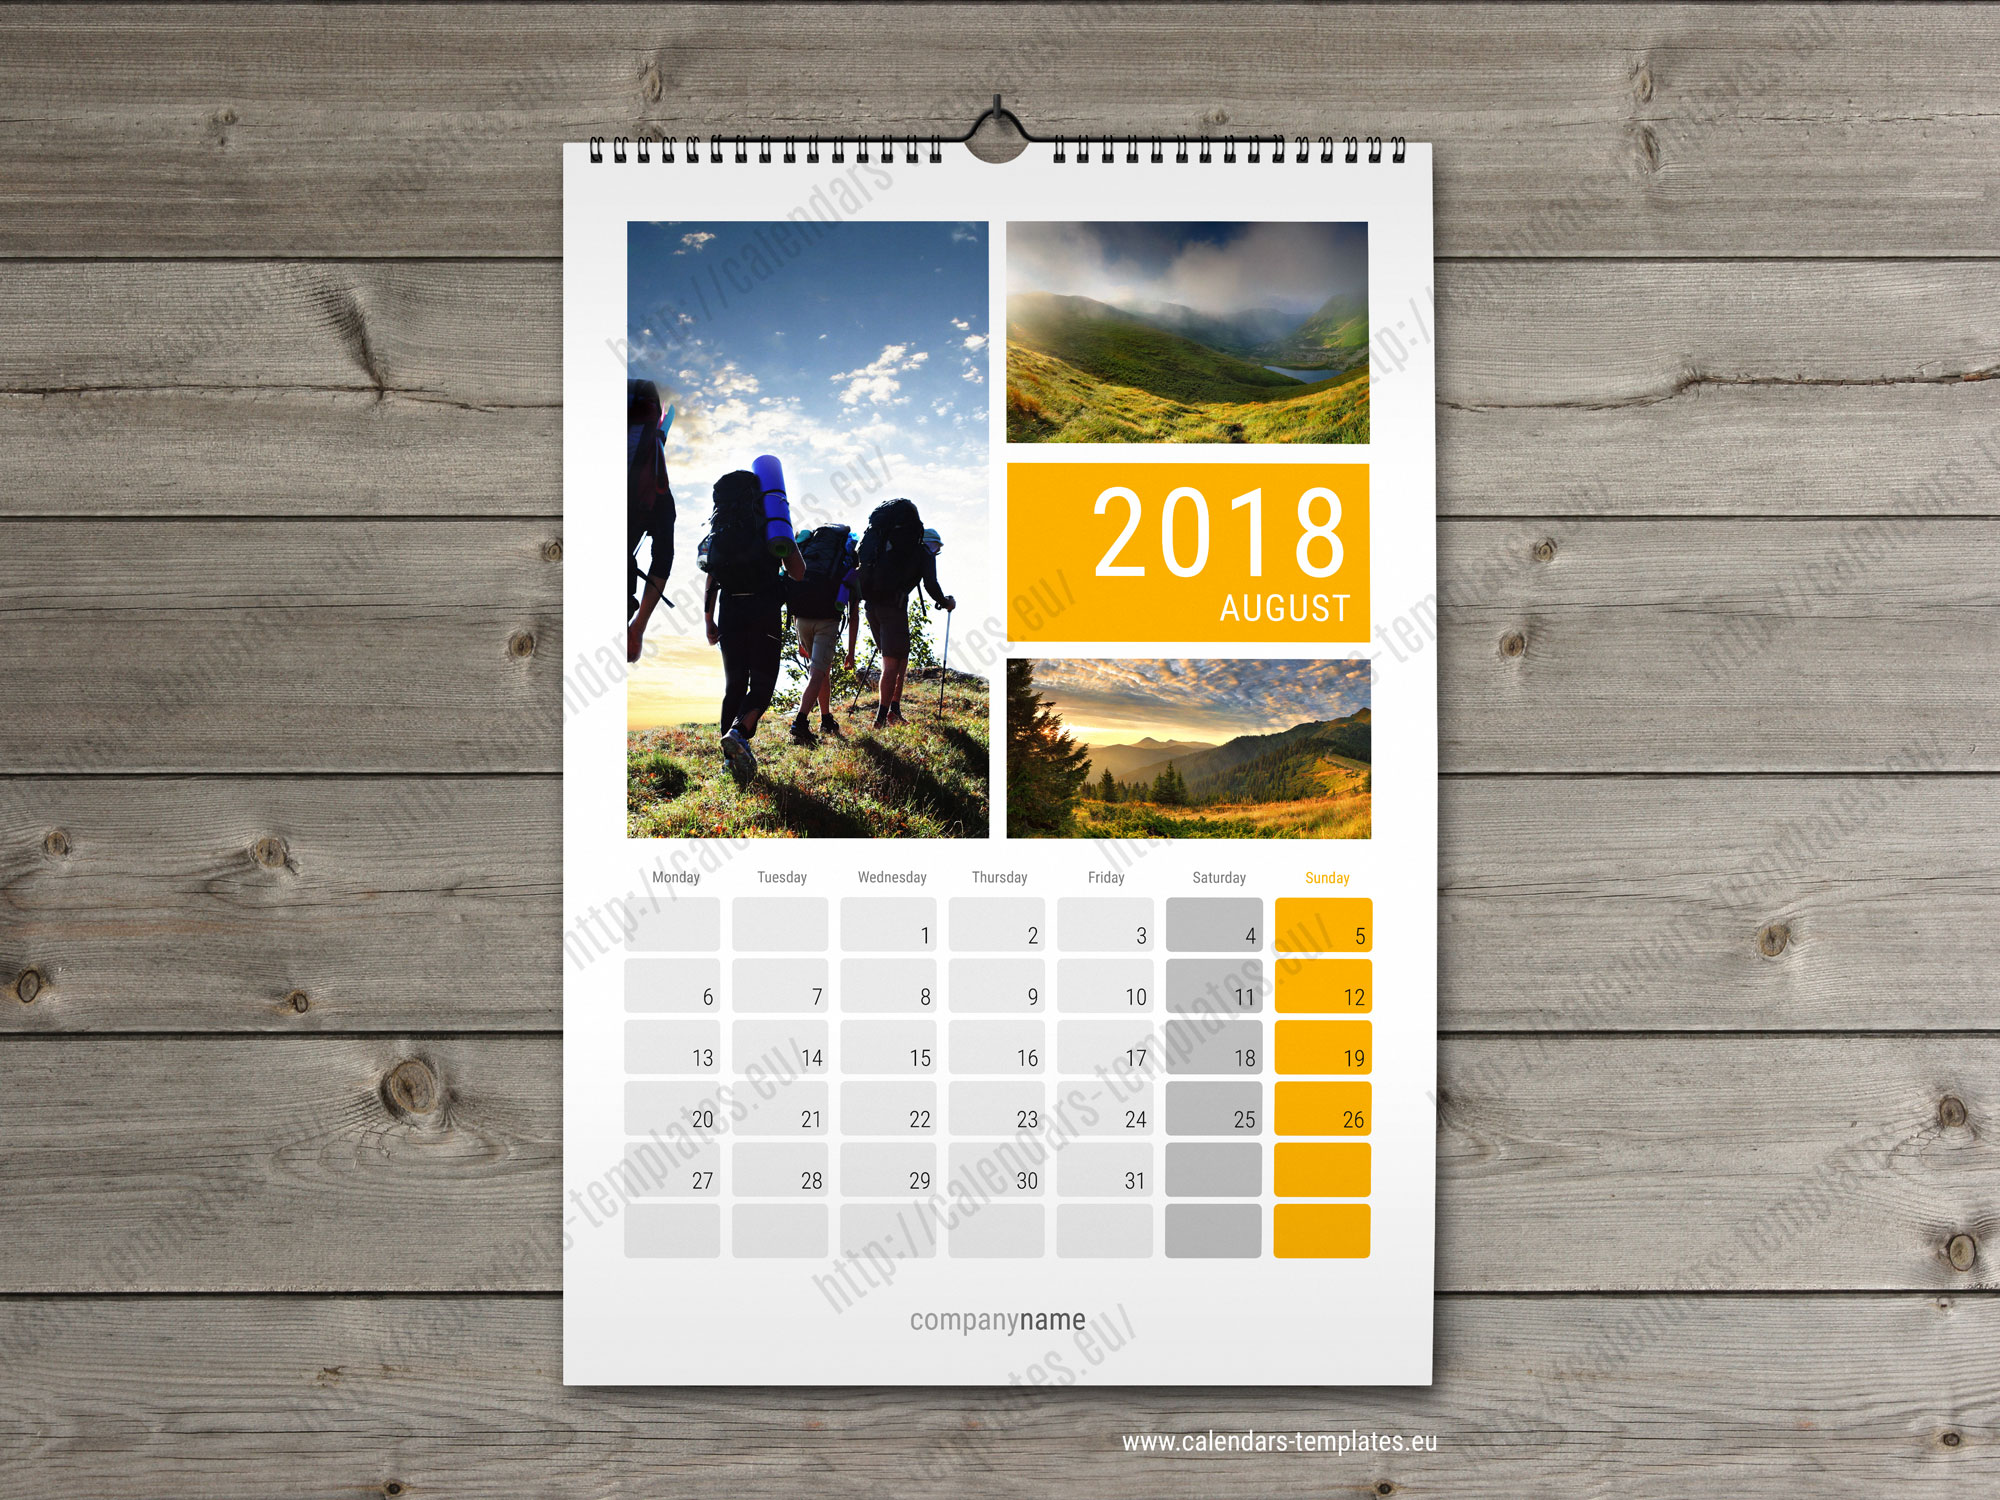 2018 wall calender planner. Monthly printable multipage calendar ...